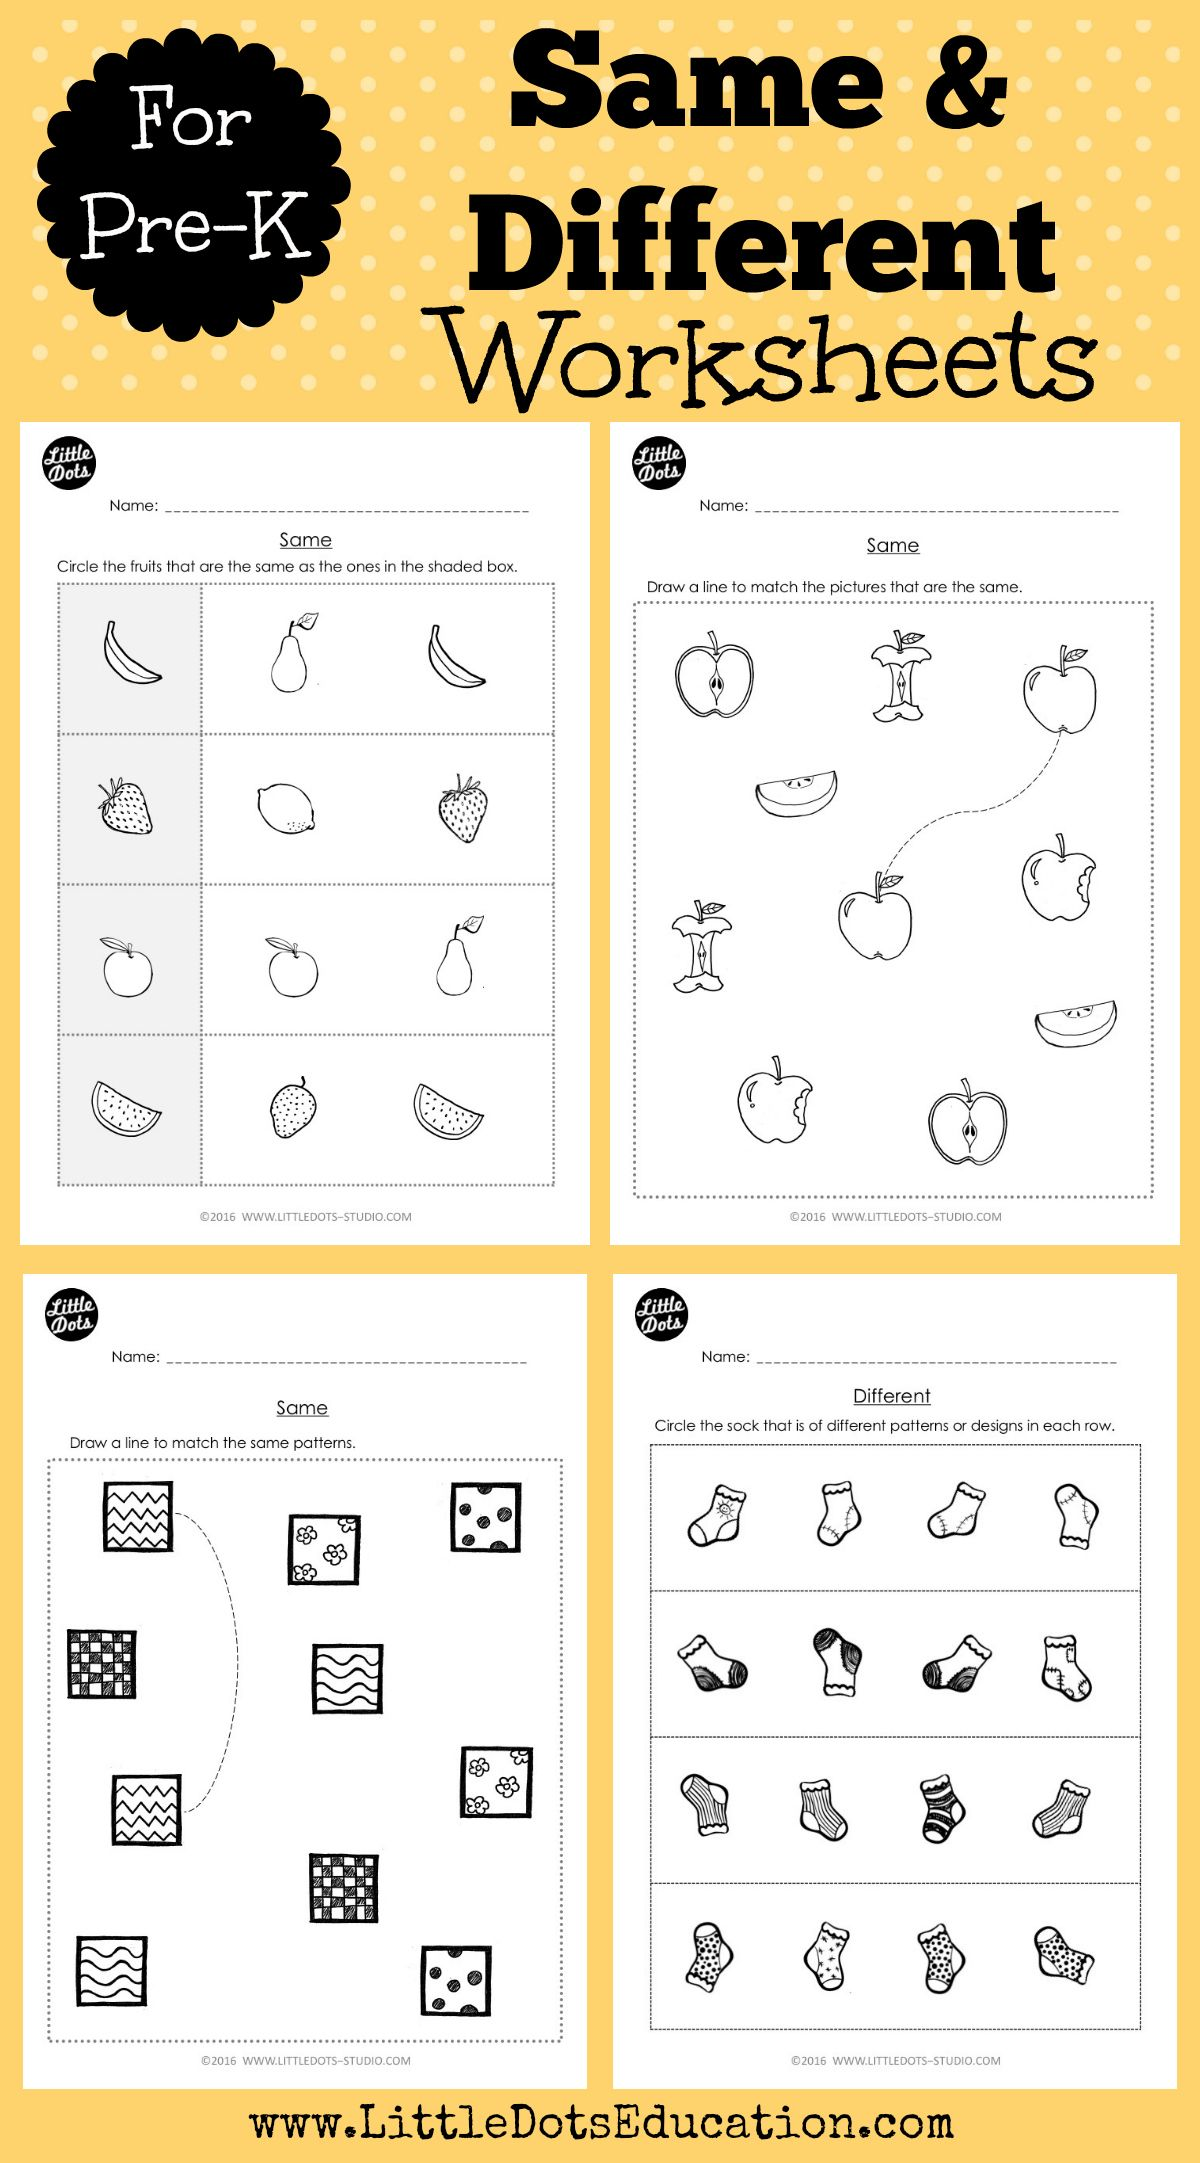 Download Worksheets And Activities To Learn The Concept Of Same And Different For Pre K Or